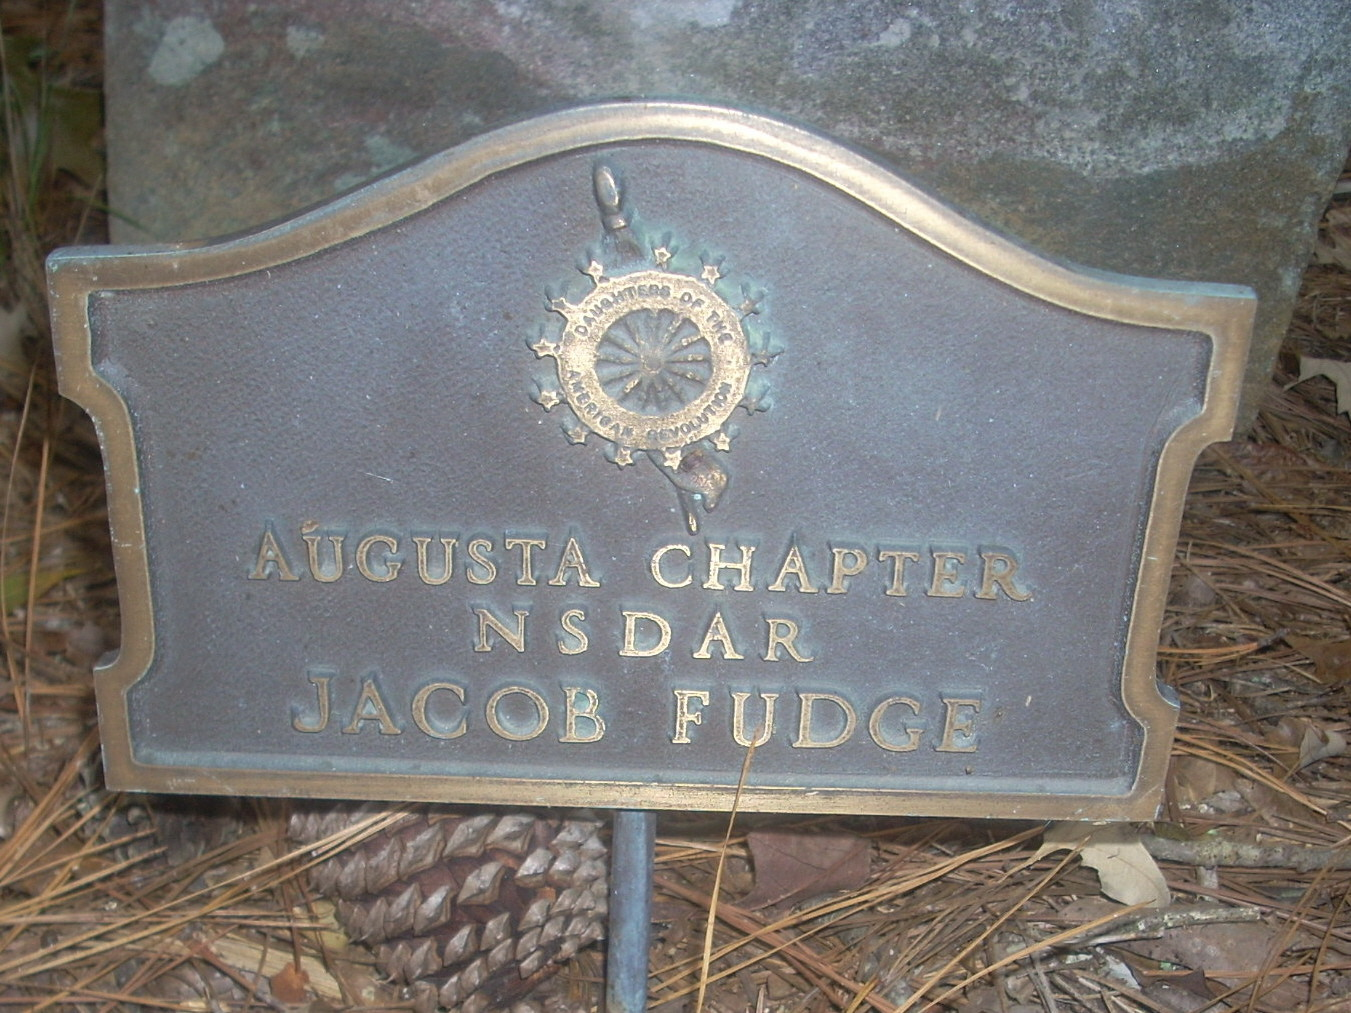 Jacob Fudge